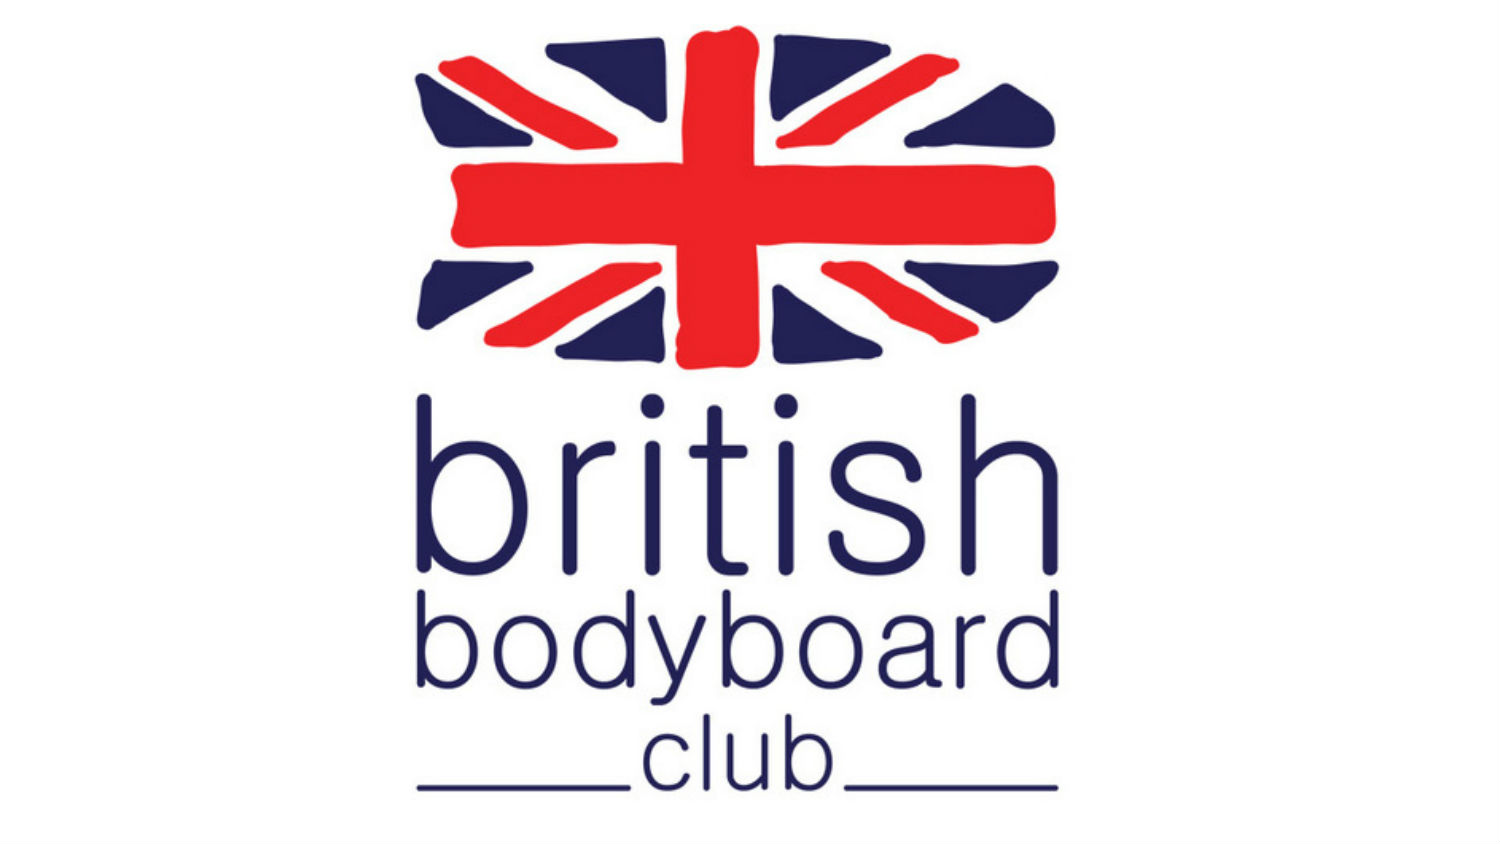 British Bodyboard Club logo